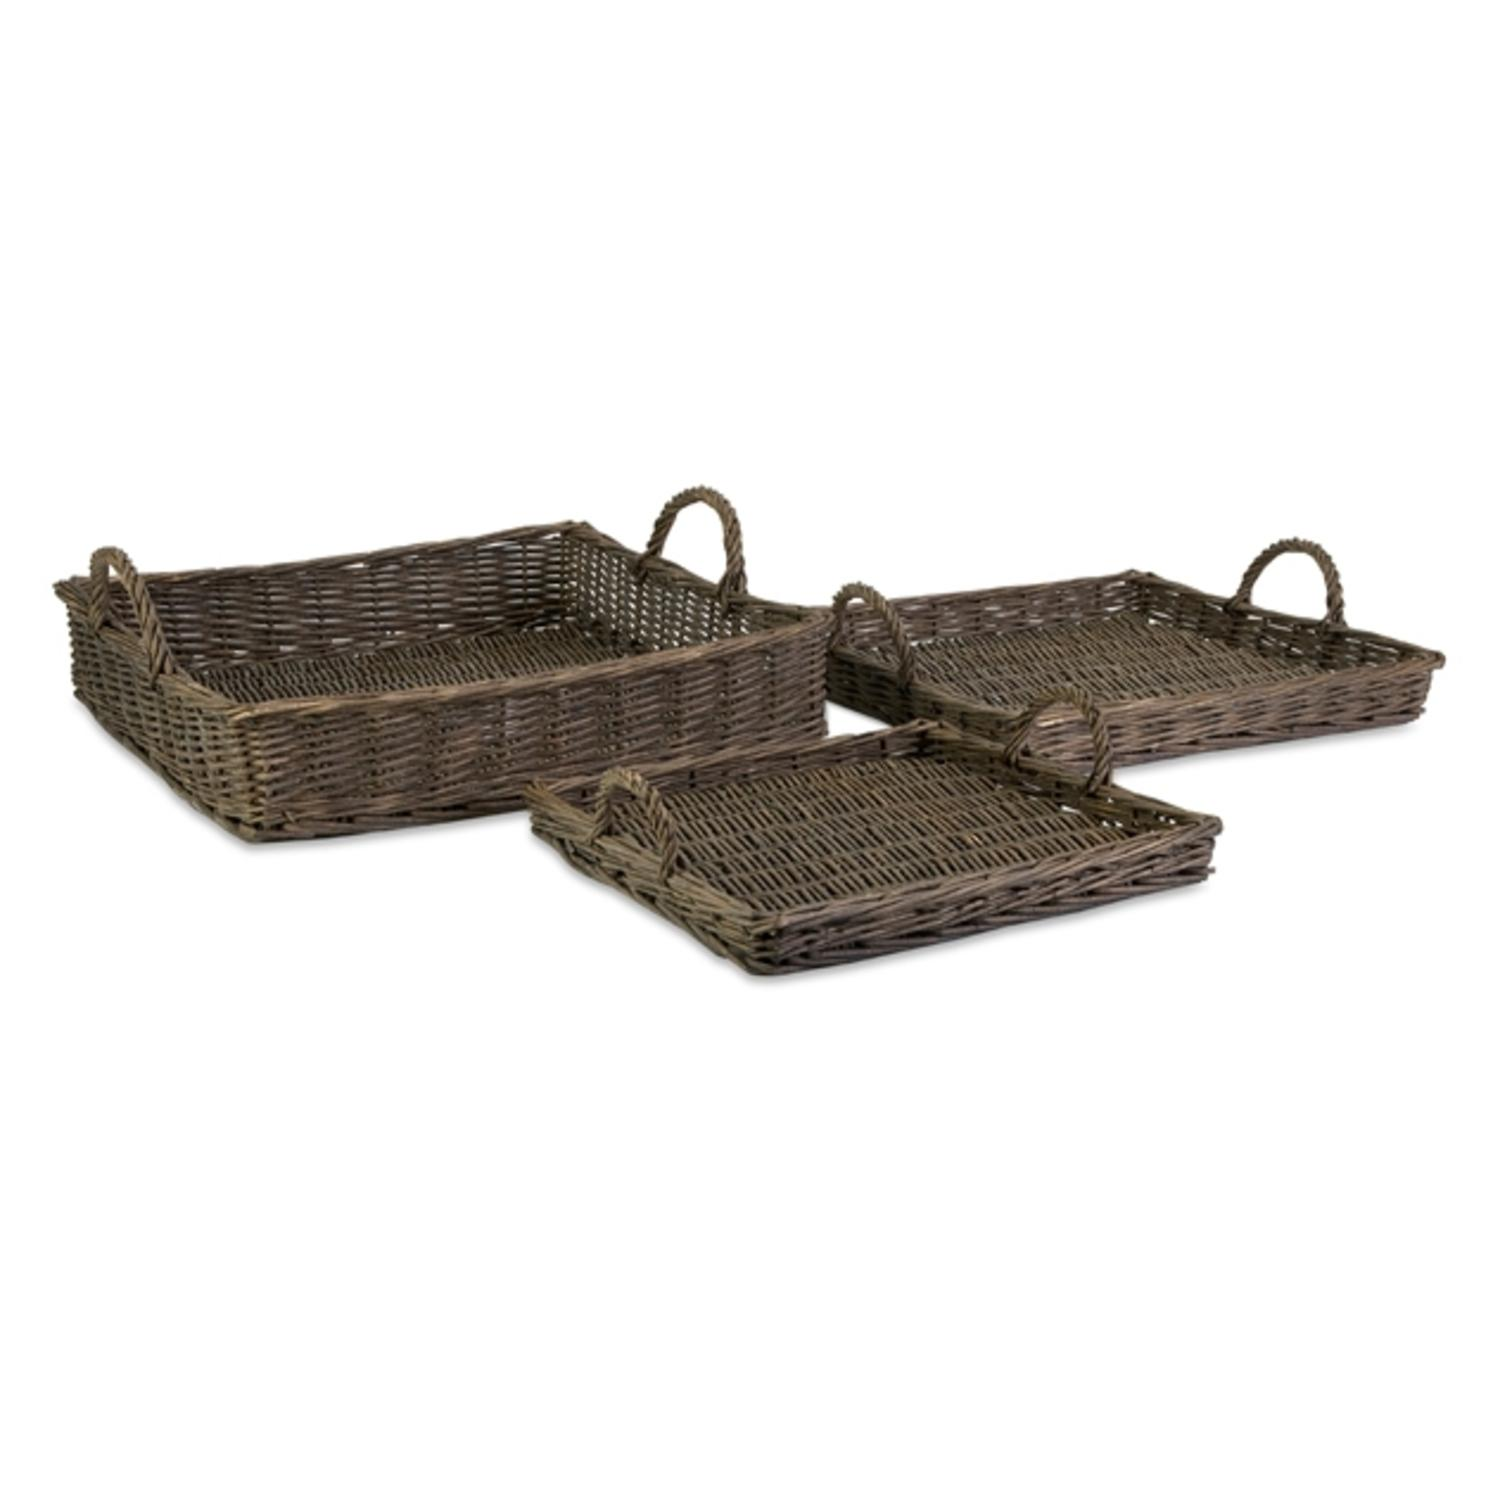 Set of 3 Country Rustic Woven Willow Serving Trays with Handles